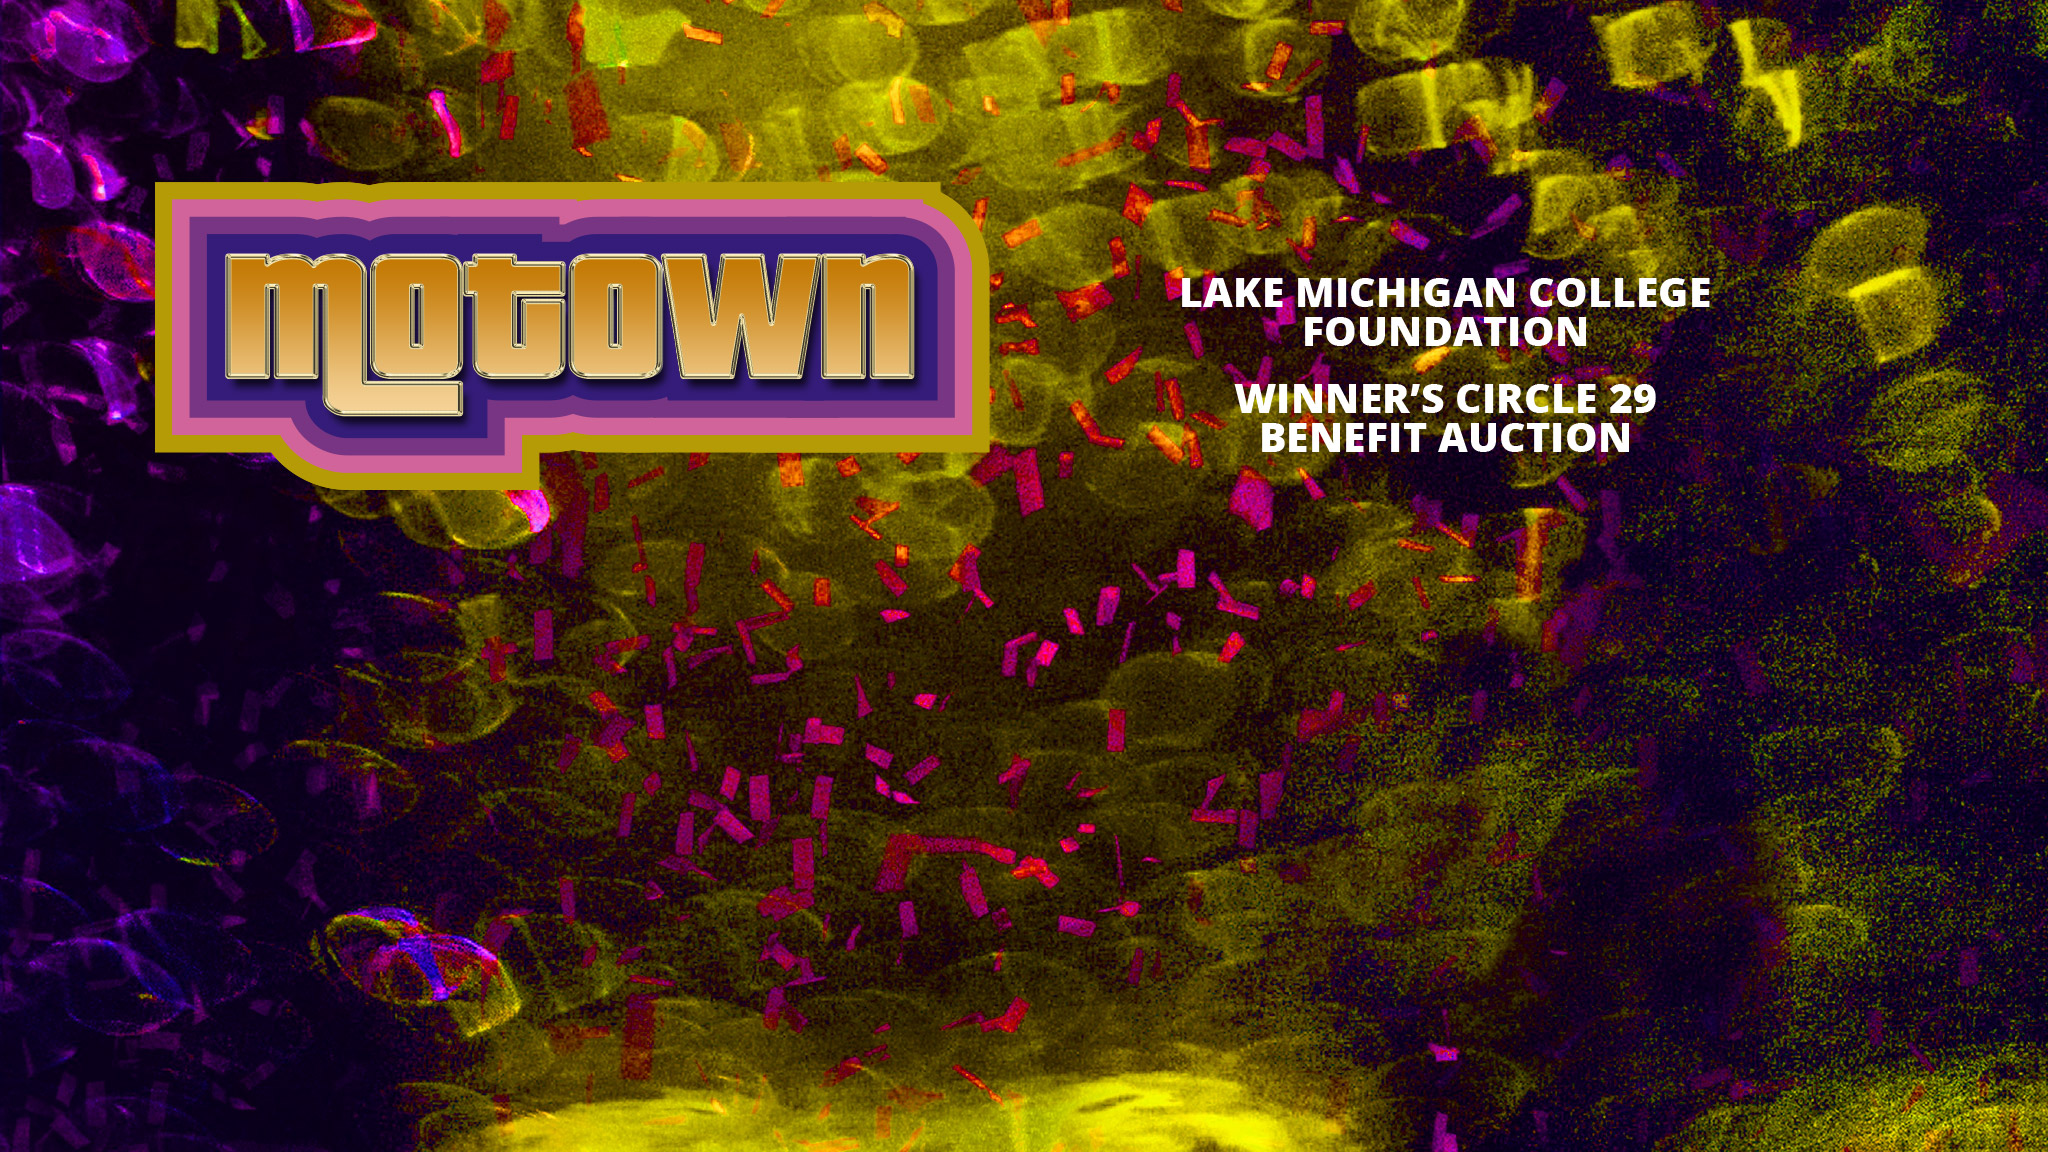 Motown: Winner's Circle Benefit Auction